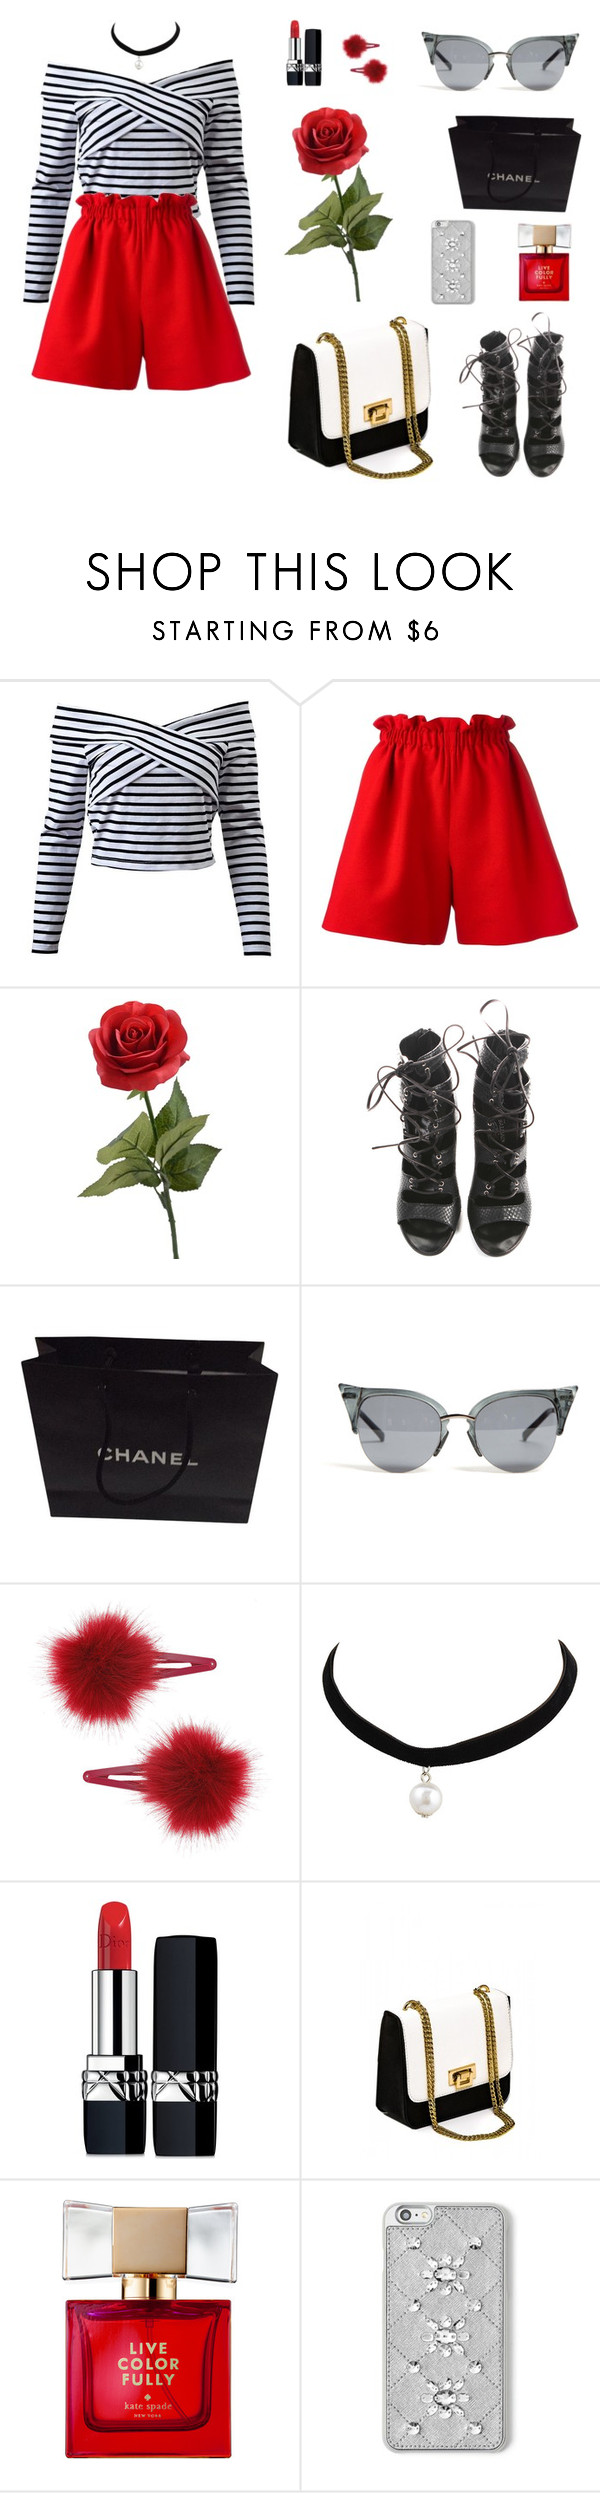 """Burr"" by twyzter ❤ liked on Polyvore featuring Fendi, Balmain, Chanel, Topshop, Christian Dior, Kate Spade and MICHAEL Michael Kors"